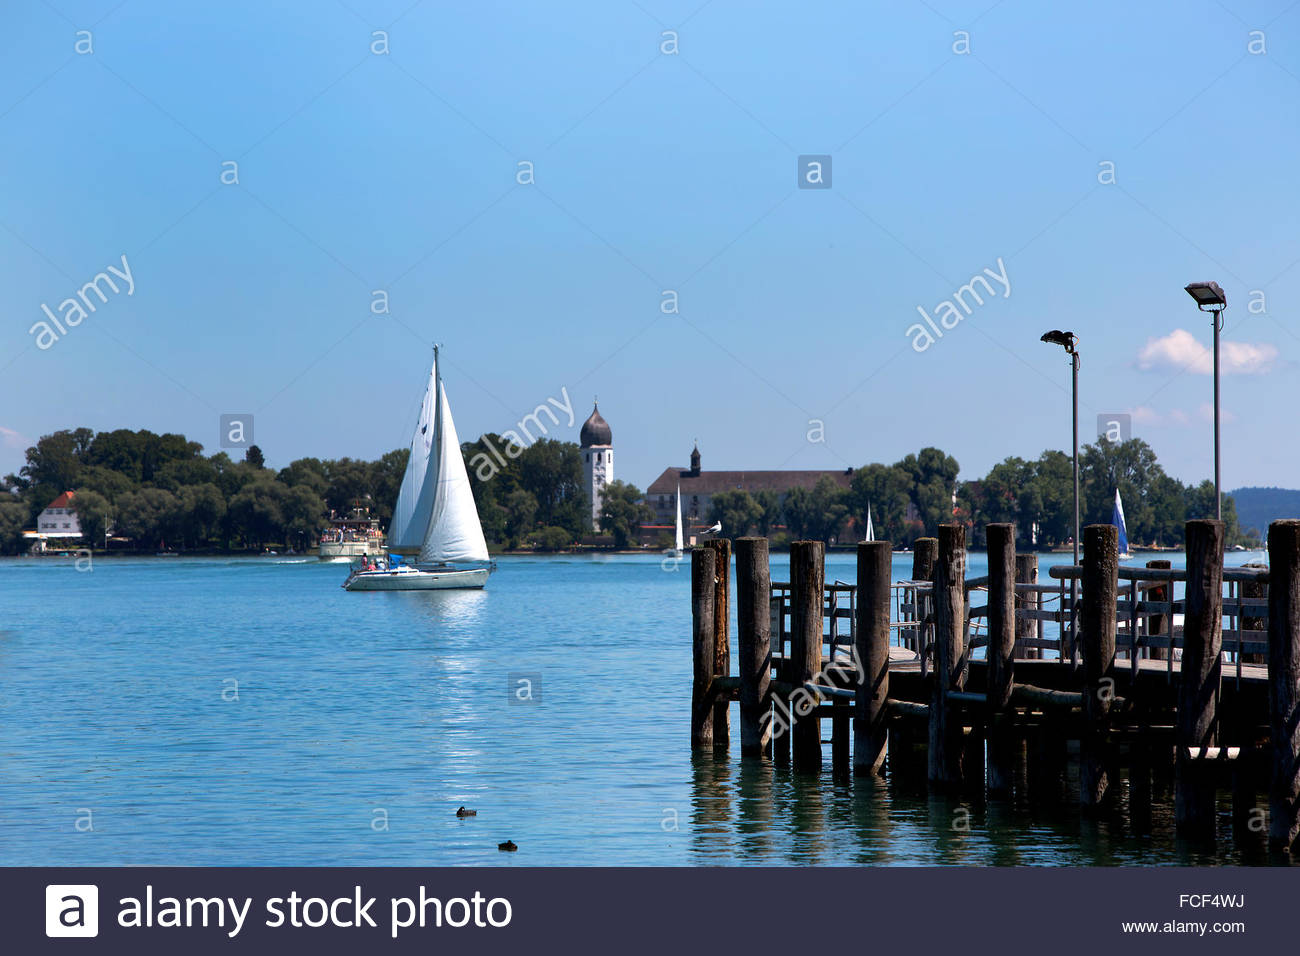 Isle of Frauenchiemsee with sailboats in Bavaria, Germany Stock Photo